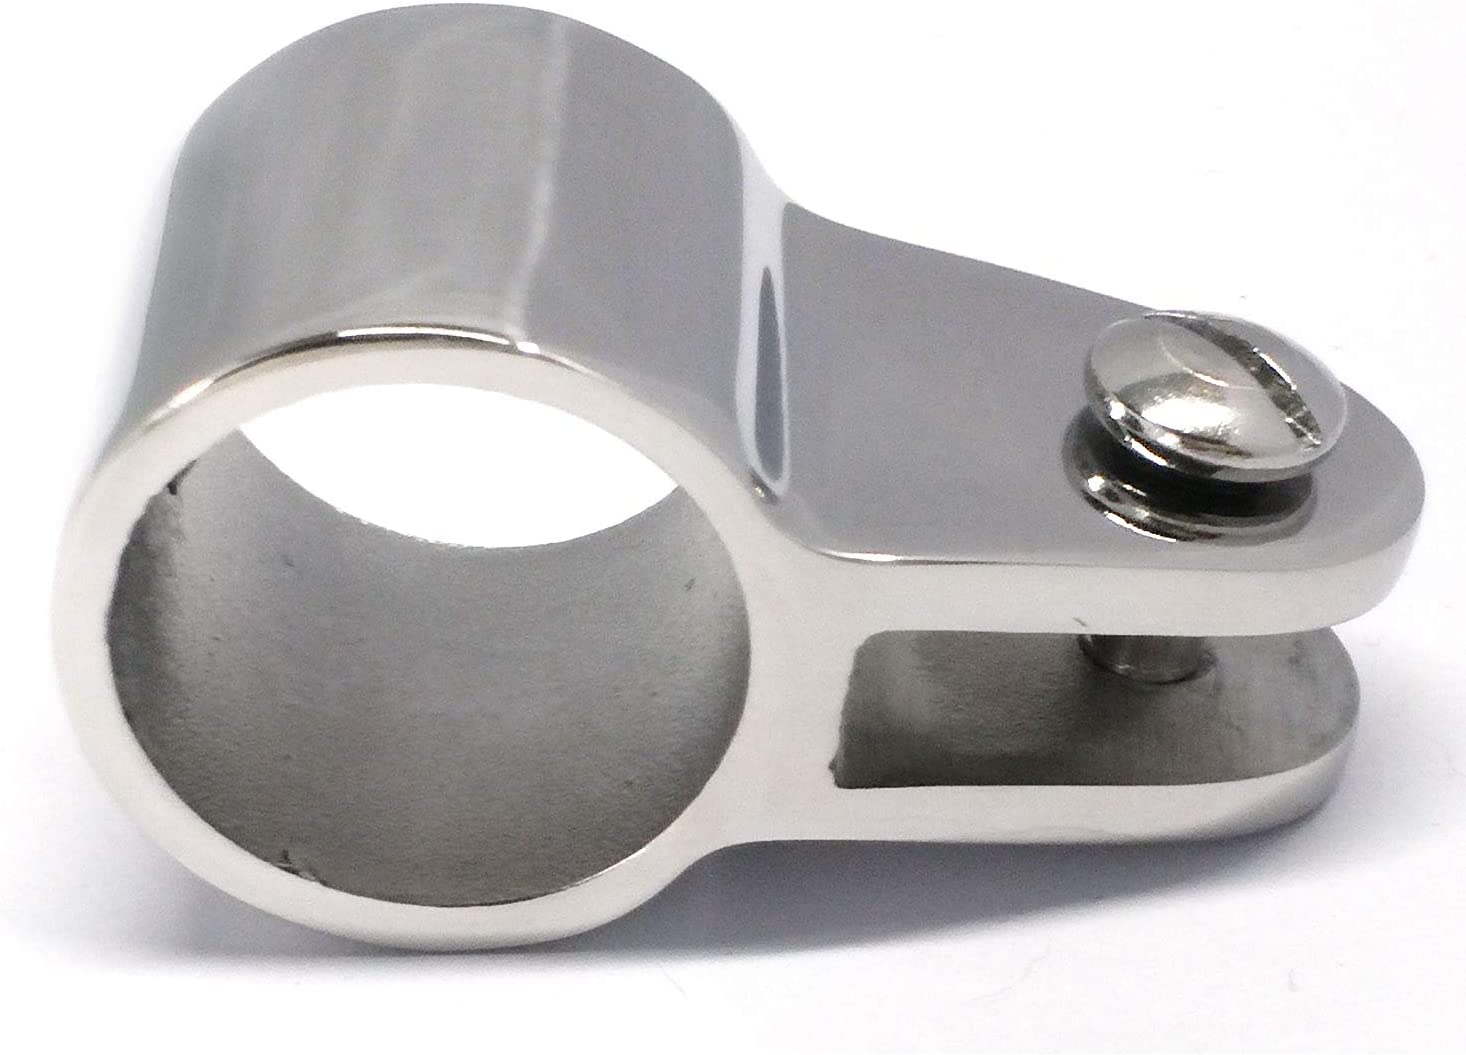 Pair of Marine Grade 316 SS 7//8 I.D.Bimini Top Jaw Slide Boat Hardware Fitting for 7//8 22.2mm Round Tube